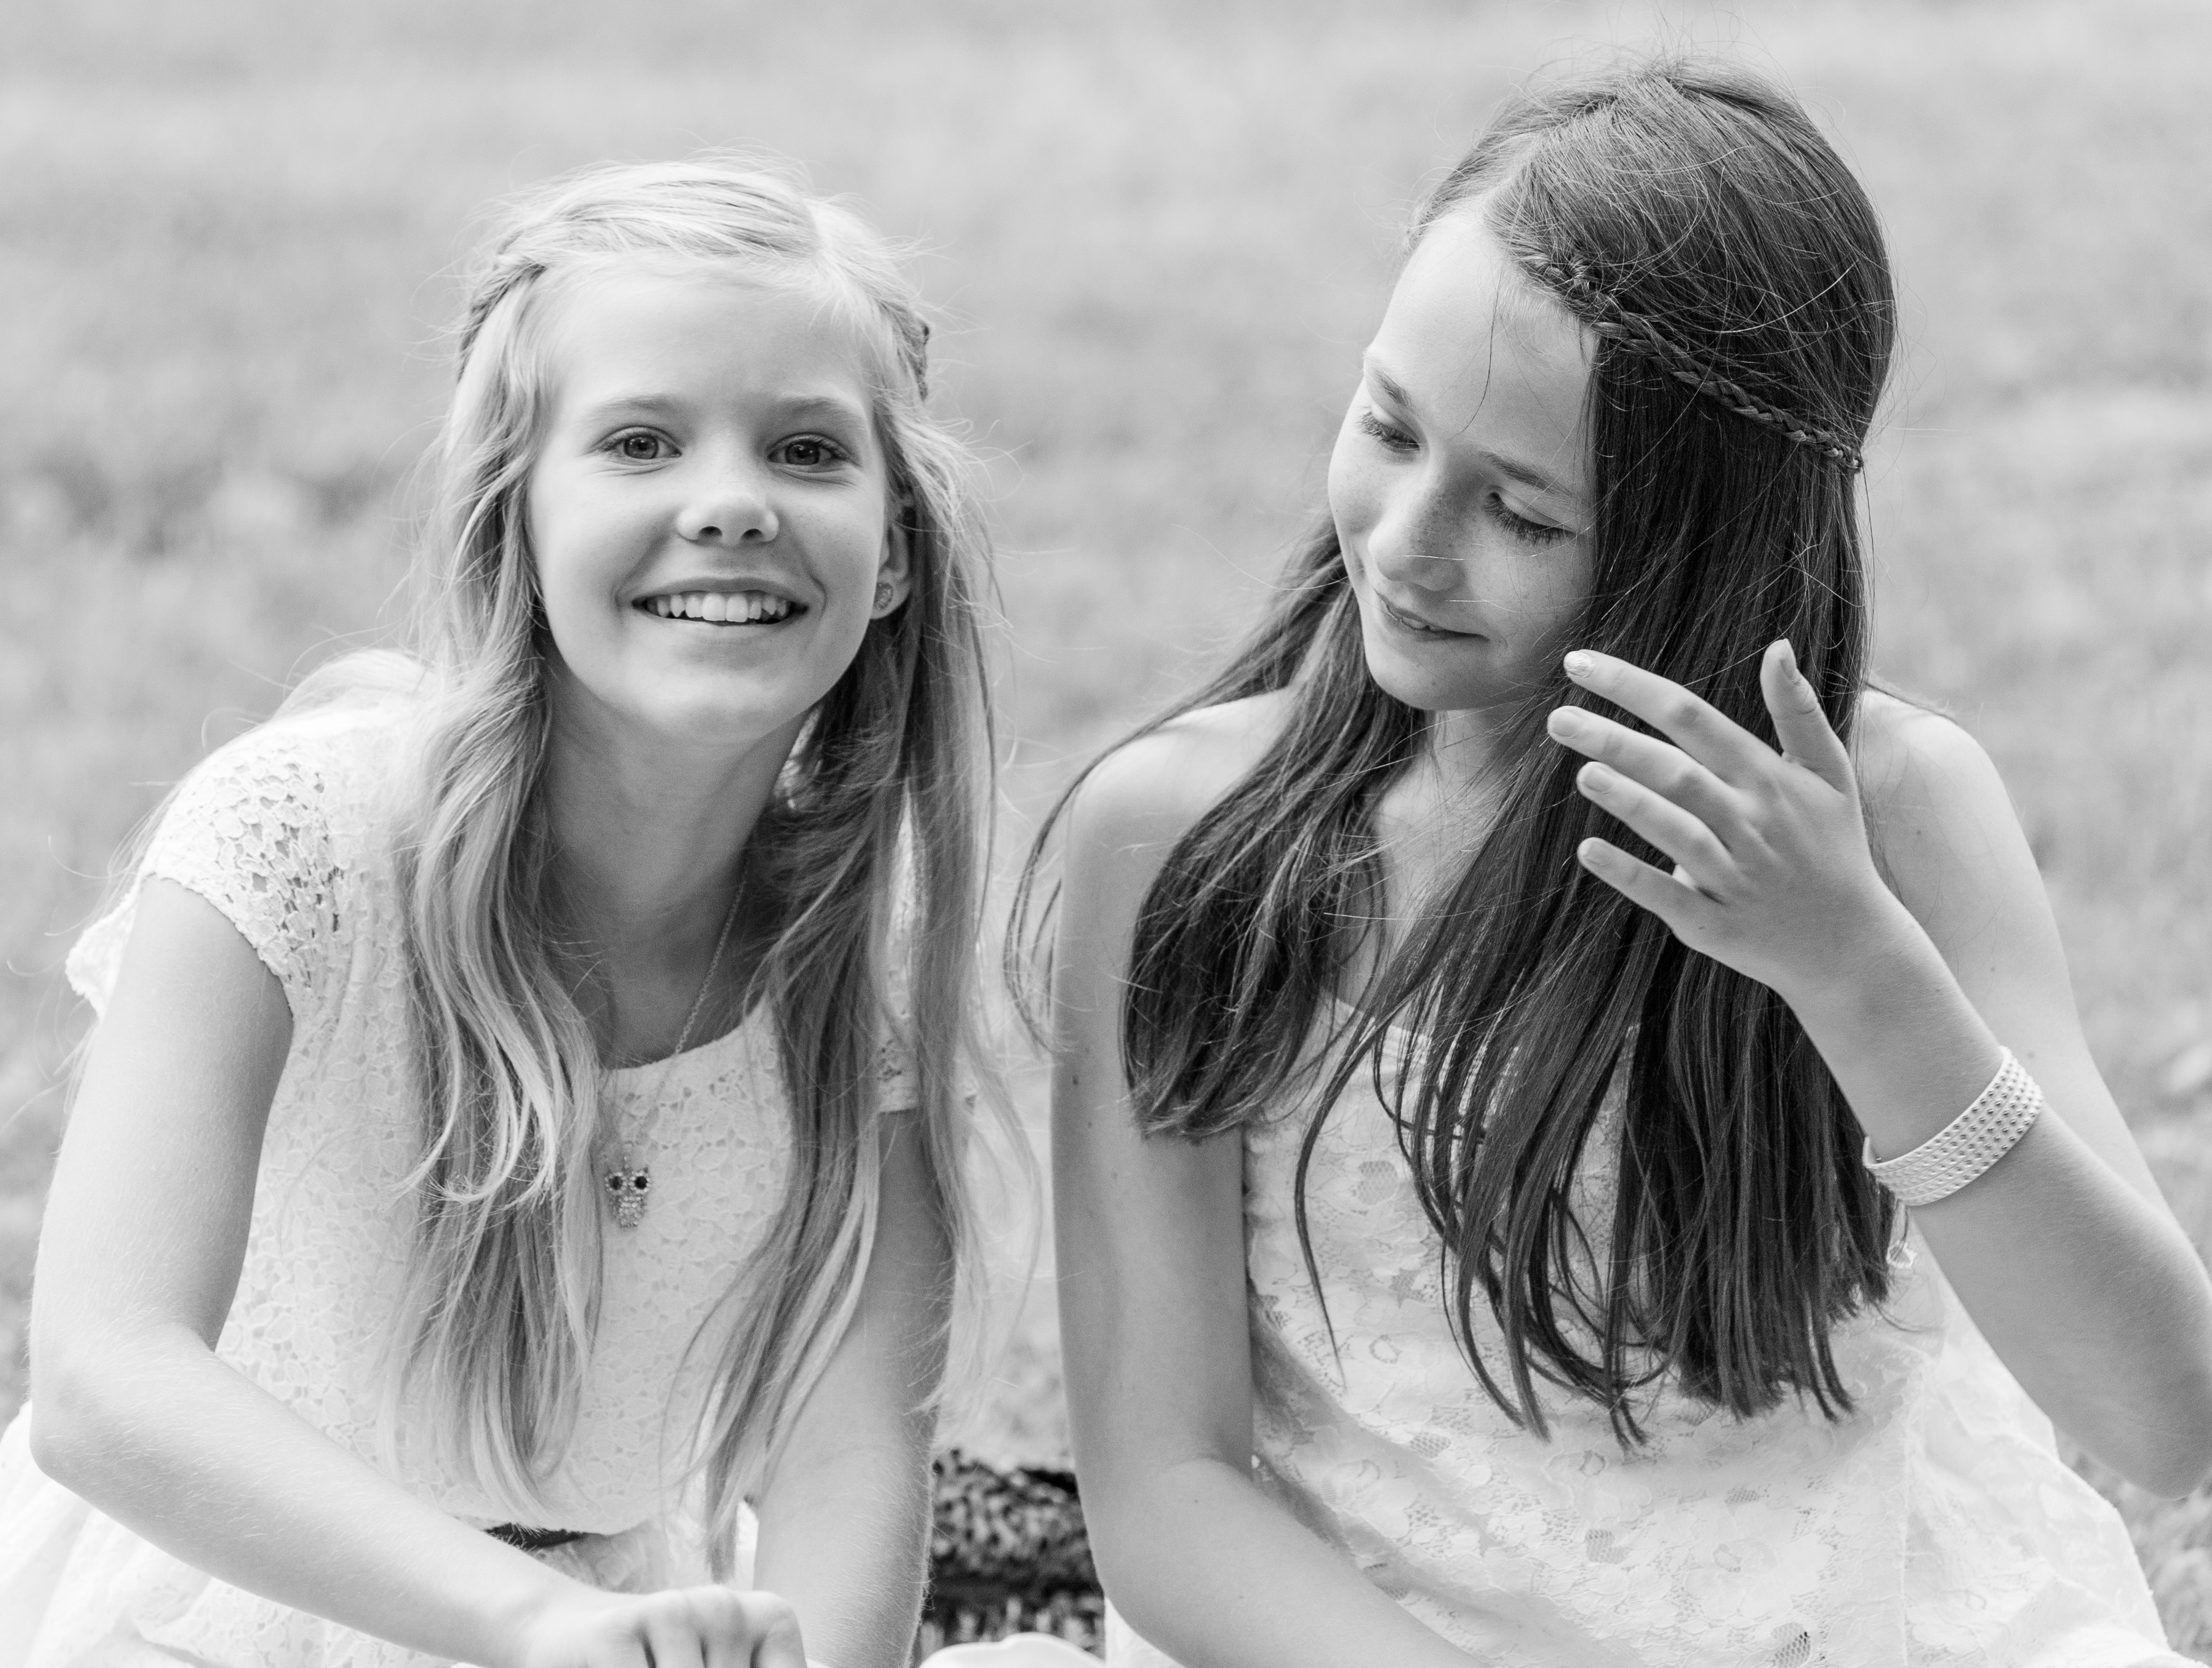 two cute girls in Sigtuna, Sweden in June 2014, picture 4 out 4, black and white version